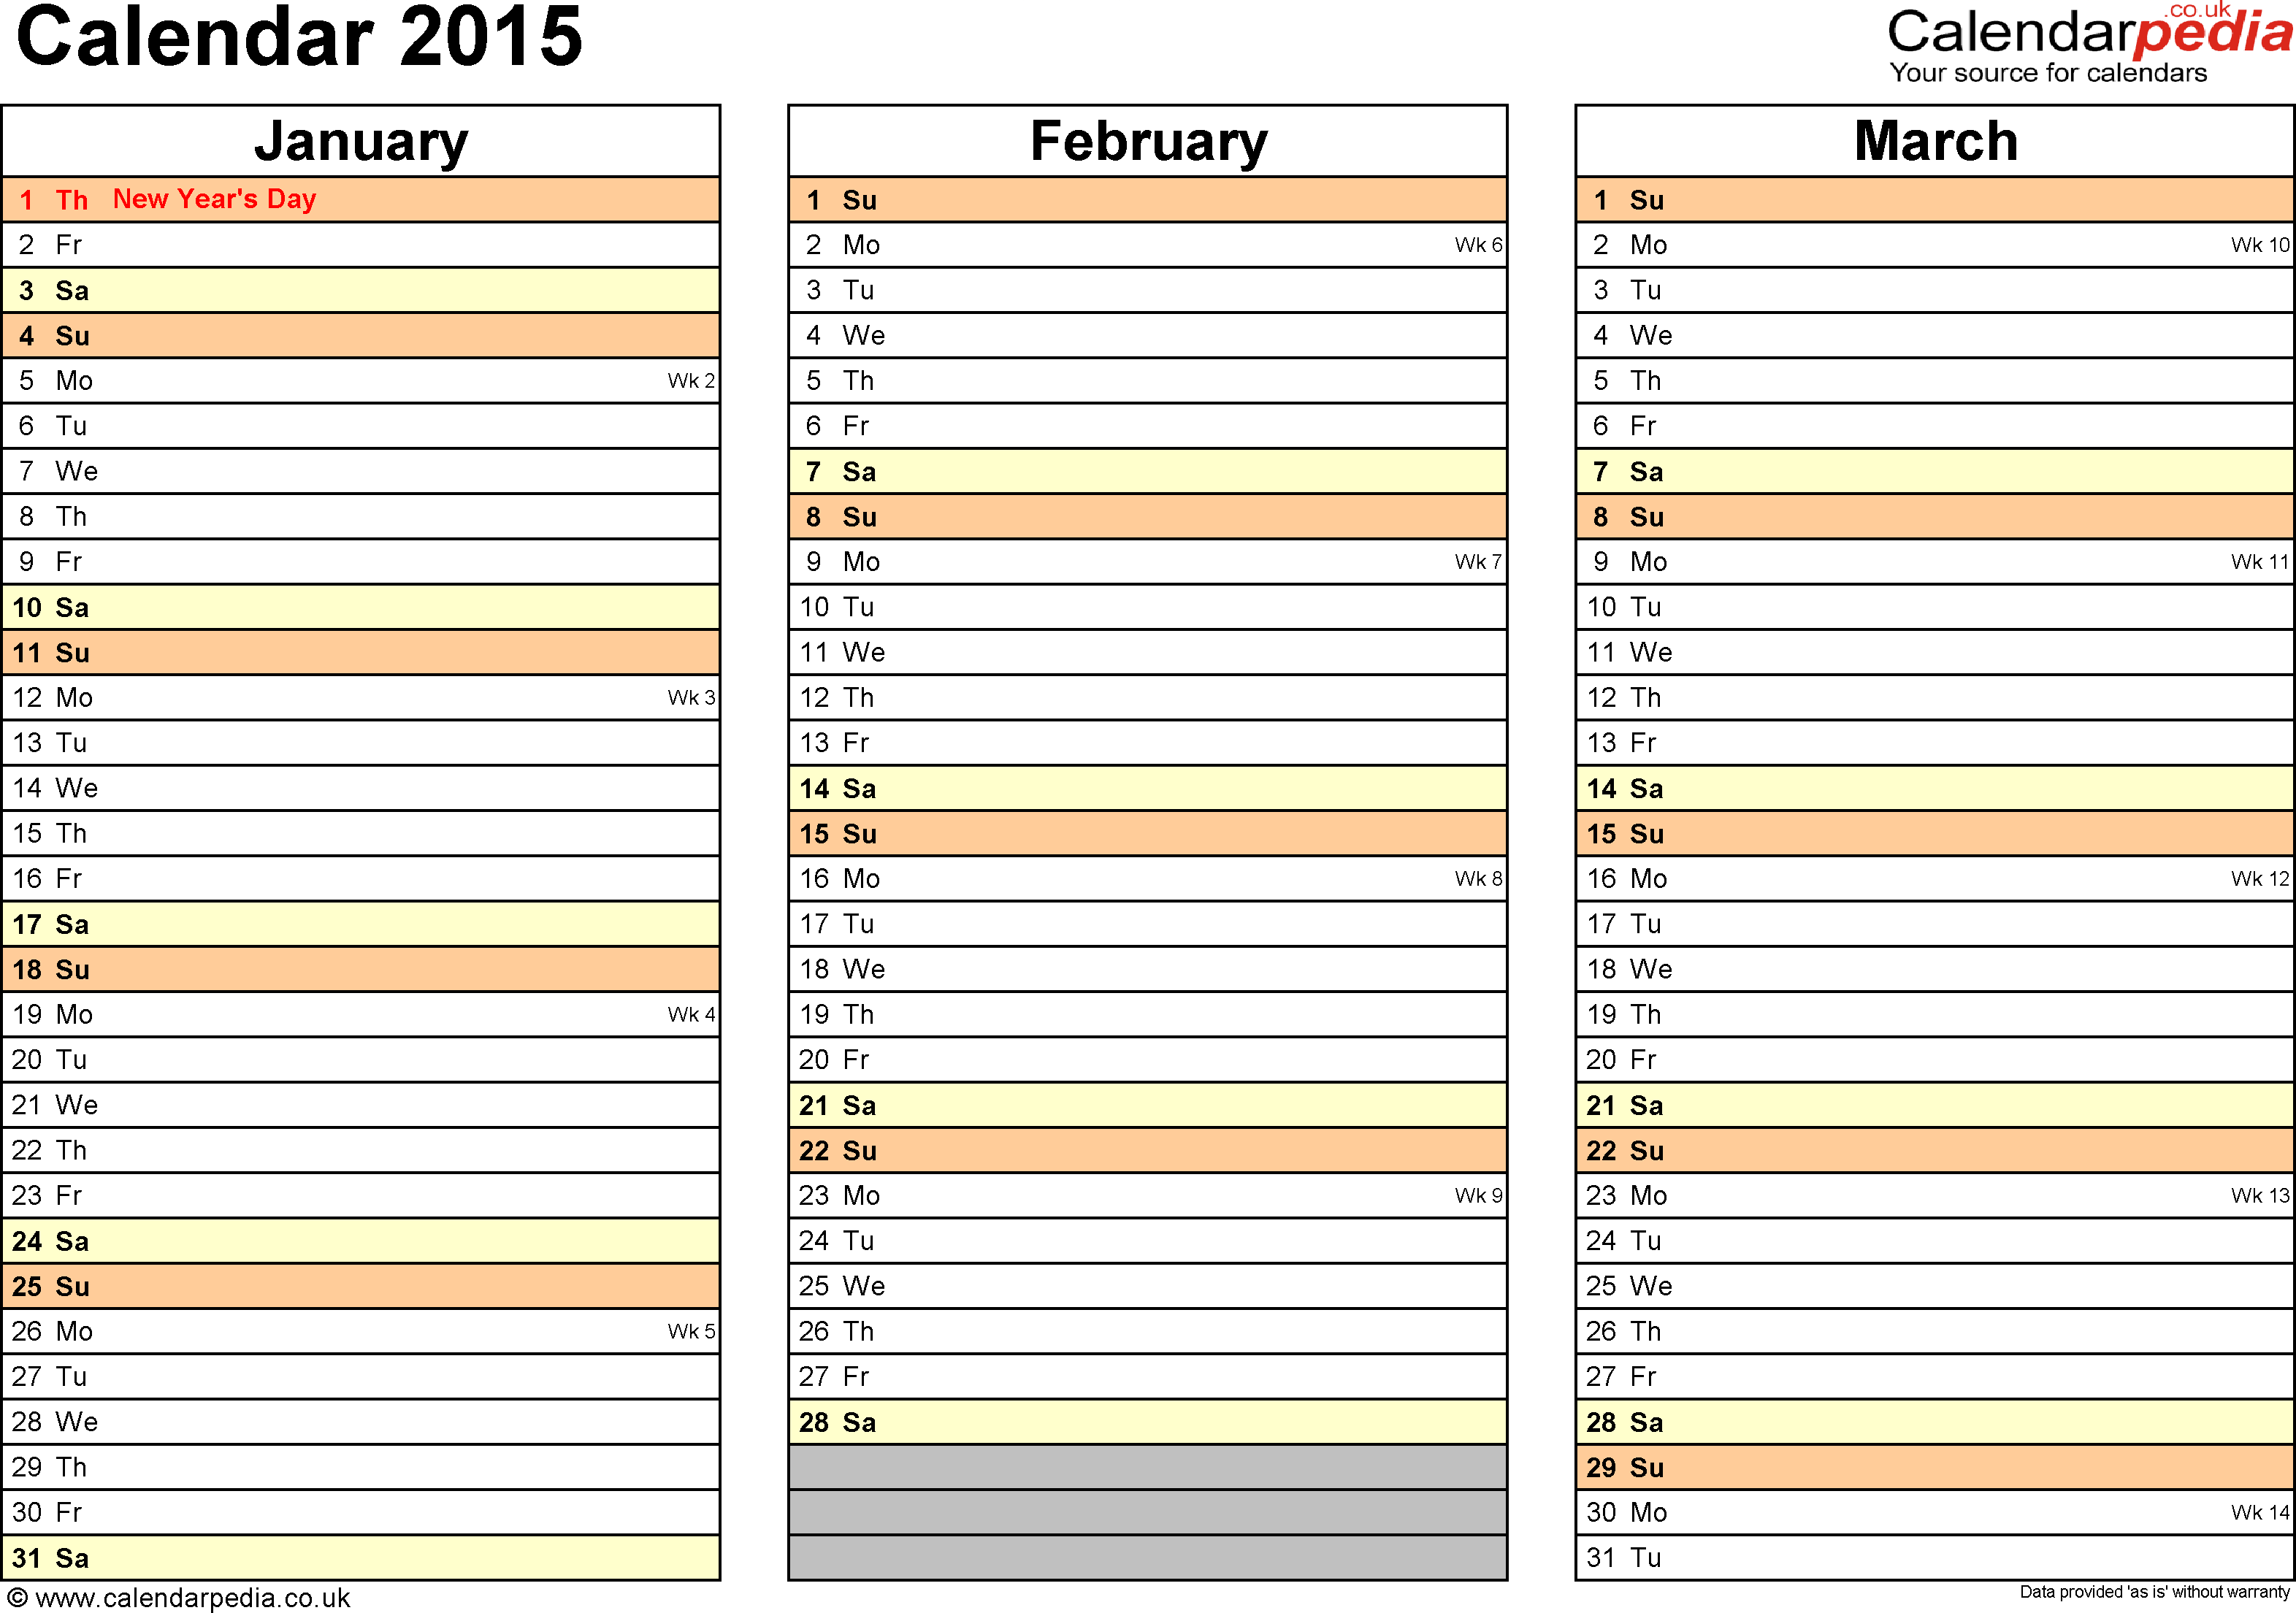 Template 5: Yearly calendar 2015 as Word template, landscape orientation, 4 pages, months horizontally, days vertically, with UK bank holidays and week numbers